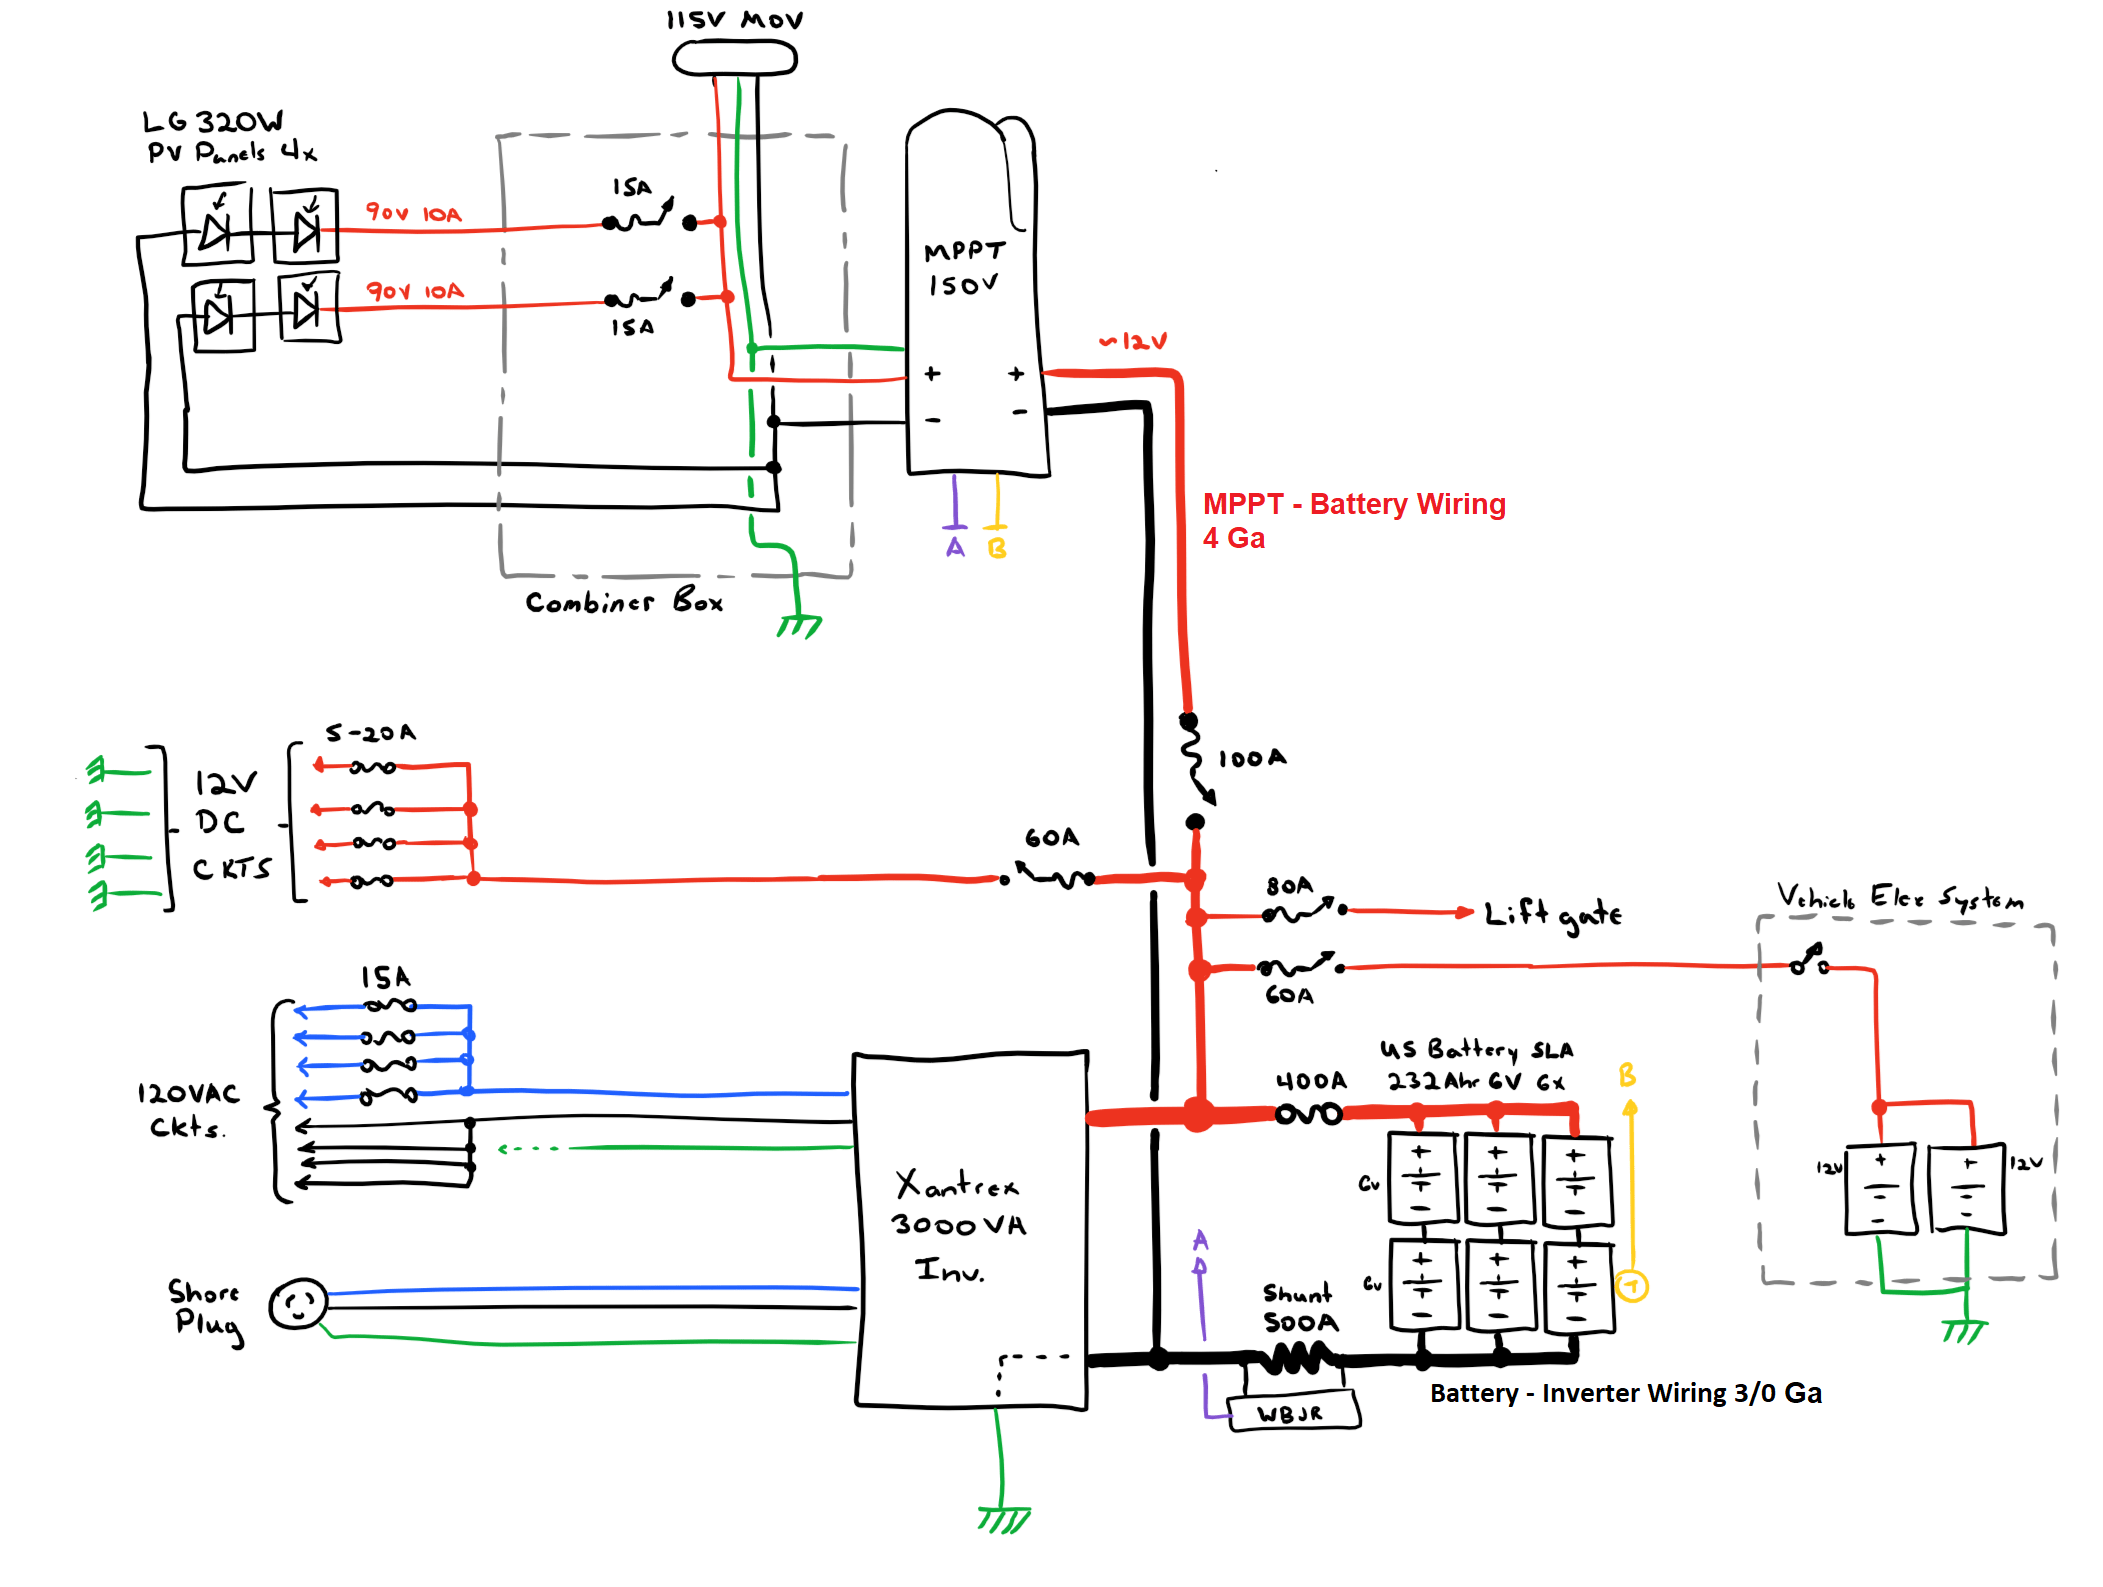 interposing relay panel wiring diagram laptop charger surge protector definition of water and